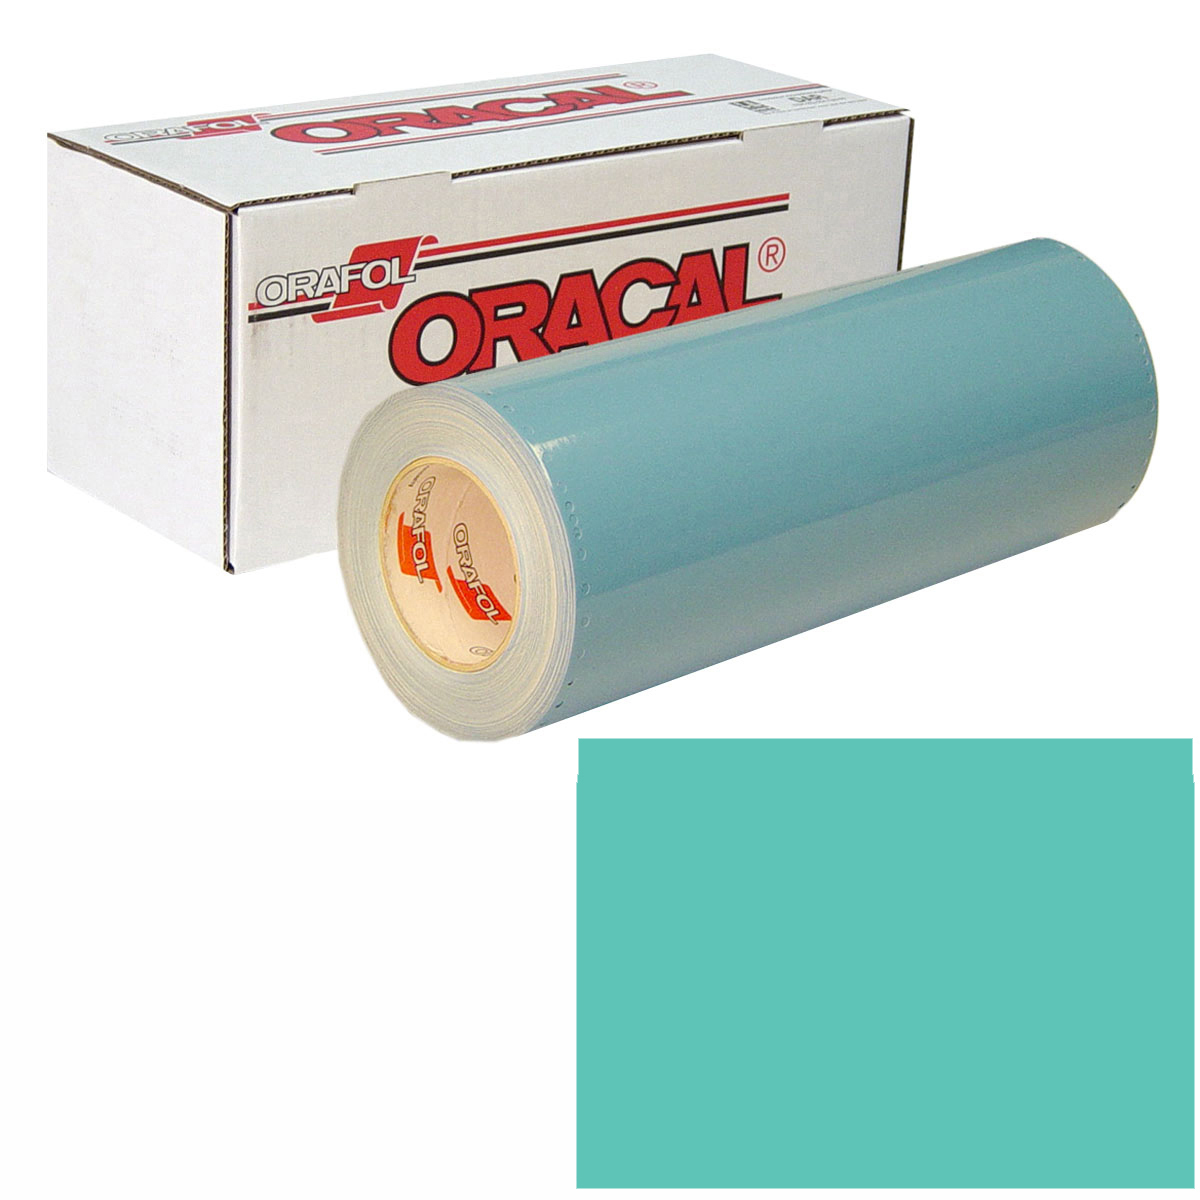 ORACAL 751 Unp 48in X 50yd 055 Mint